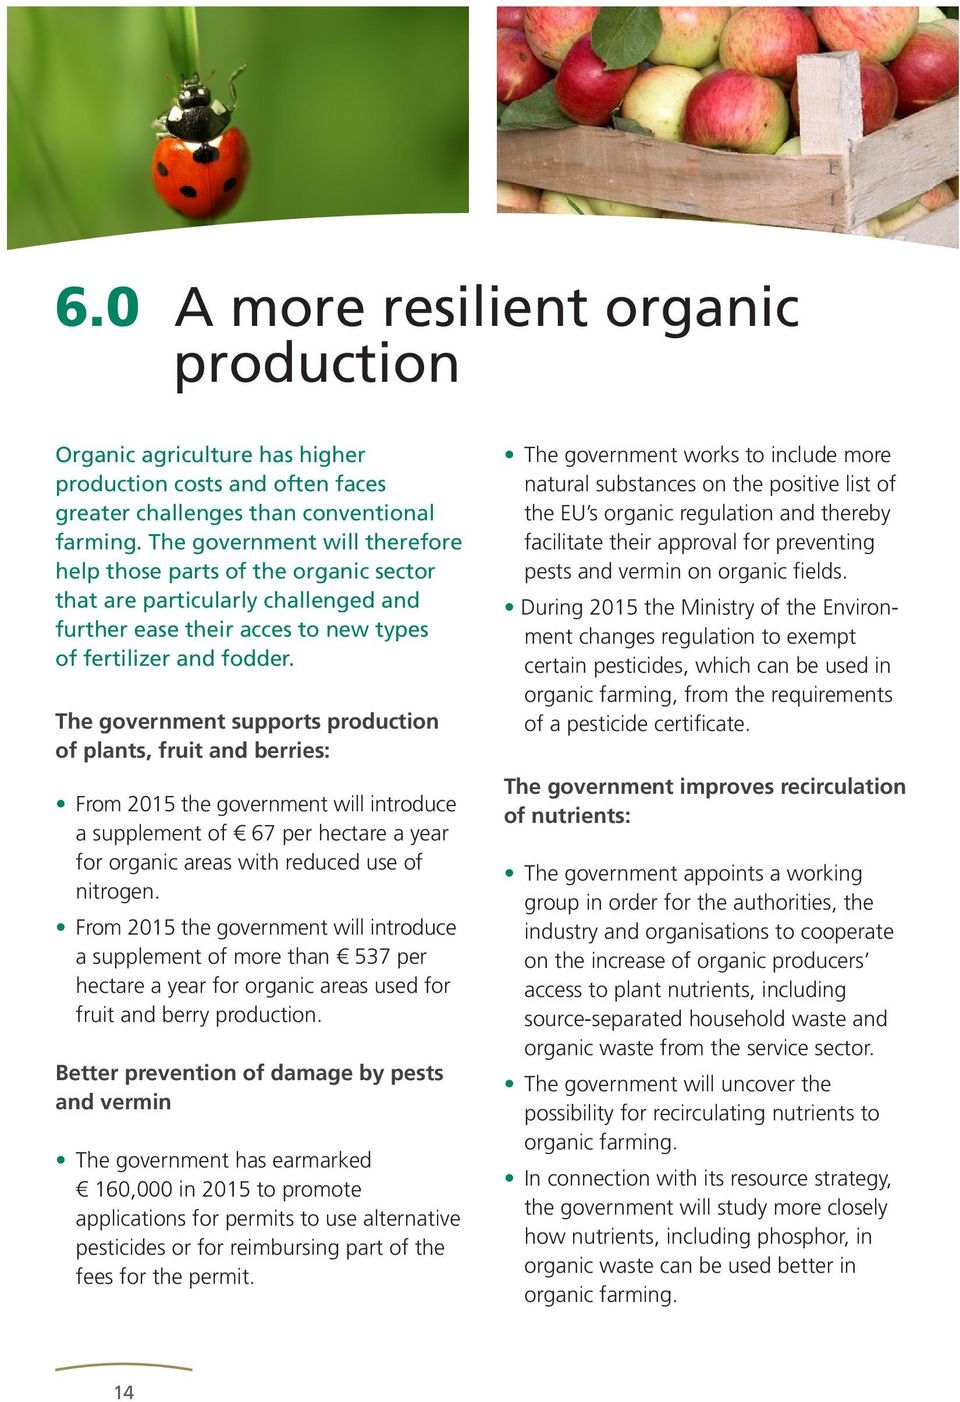 The government supports production of plants, fruit and berries: From 2015 the government will introduce a supplement of 67 per hectare a year for organic areas with reduced use of nitrogen.